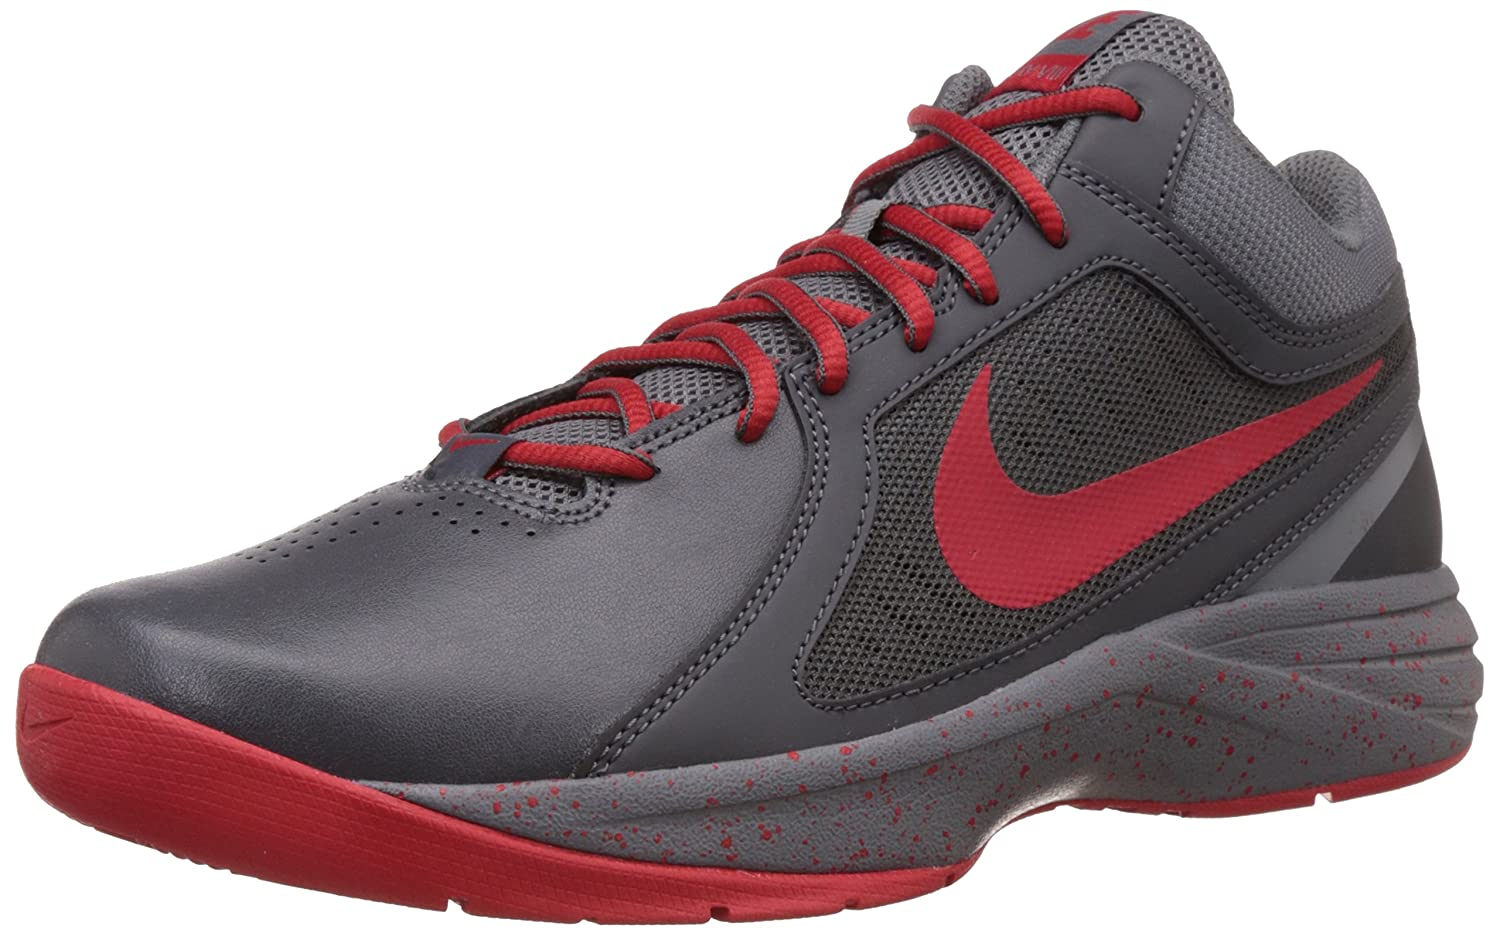 nike basketball shoes. nike men\u0027s the overplay viii basketball shoes: buy online at low prices in india - amazon.in shoes